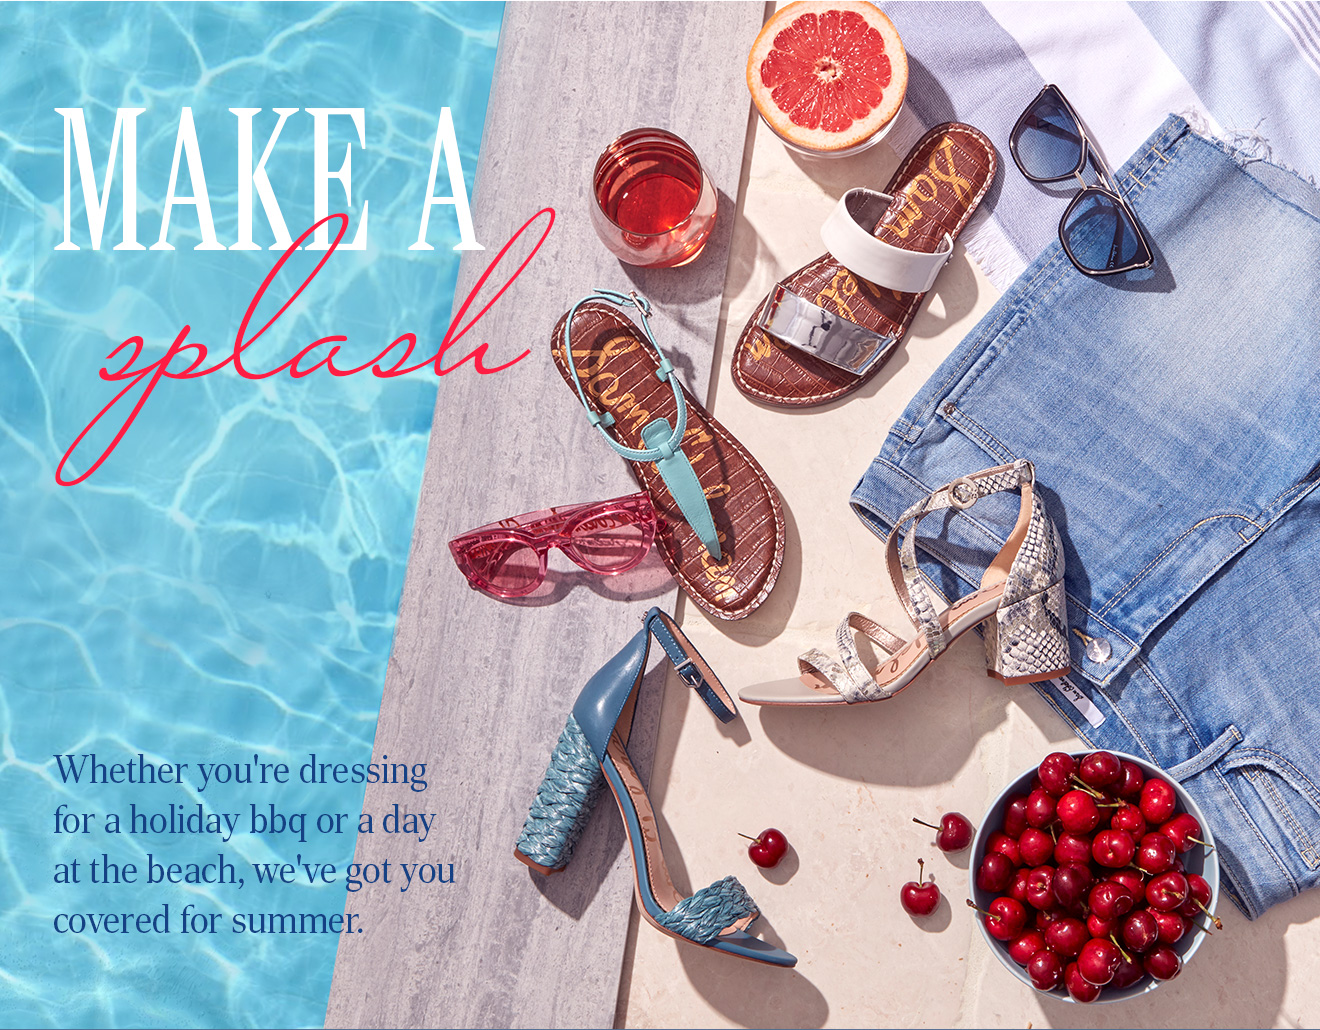 MAKE A SPLASH. Whether you're dressing for a holiday bbq or a dayat the beach, we've got you covered for summer.